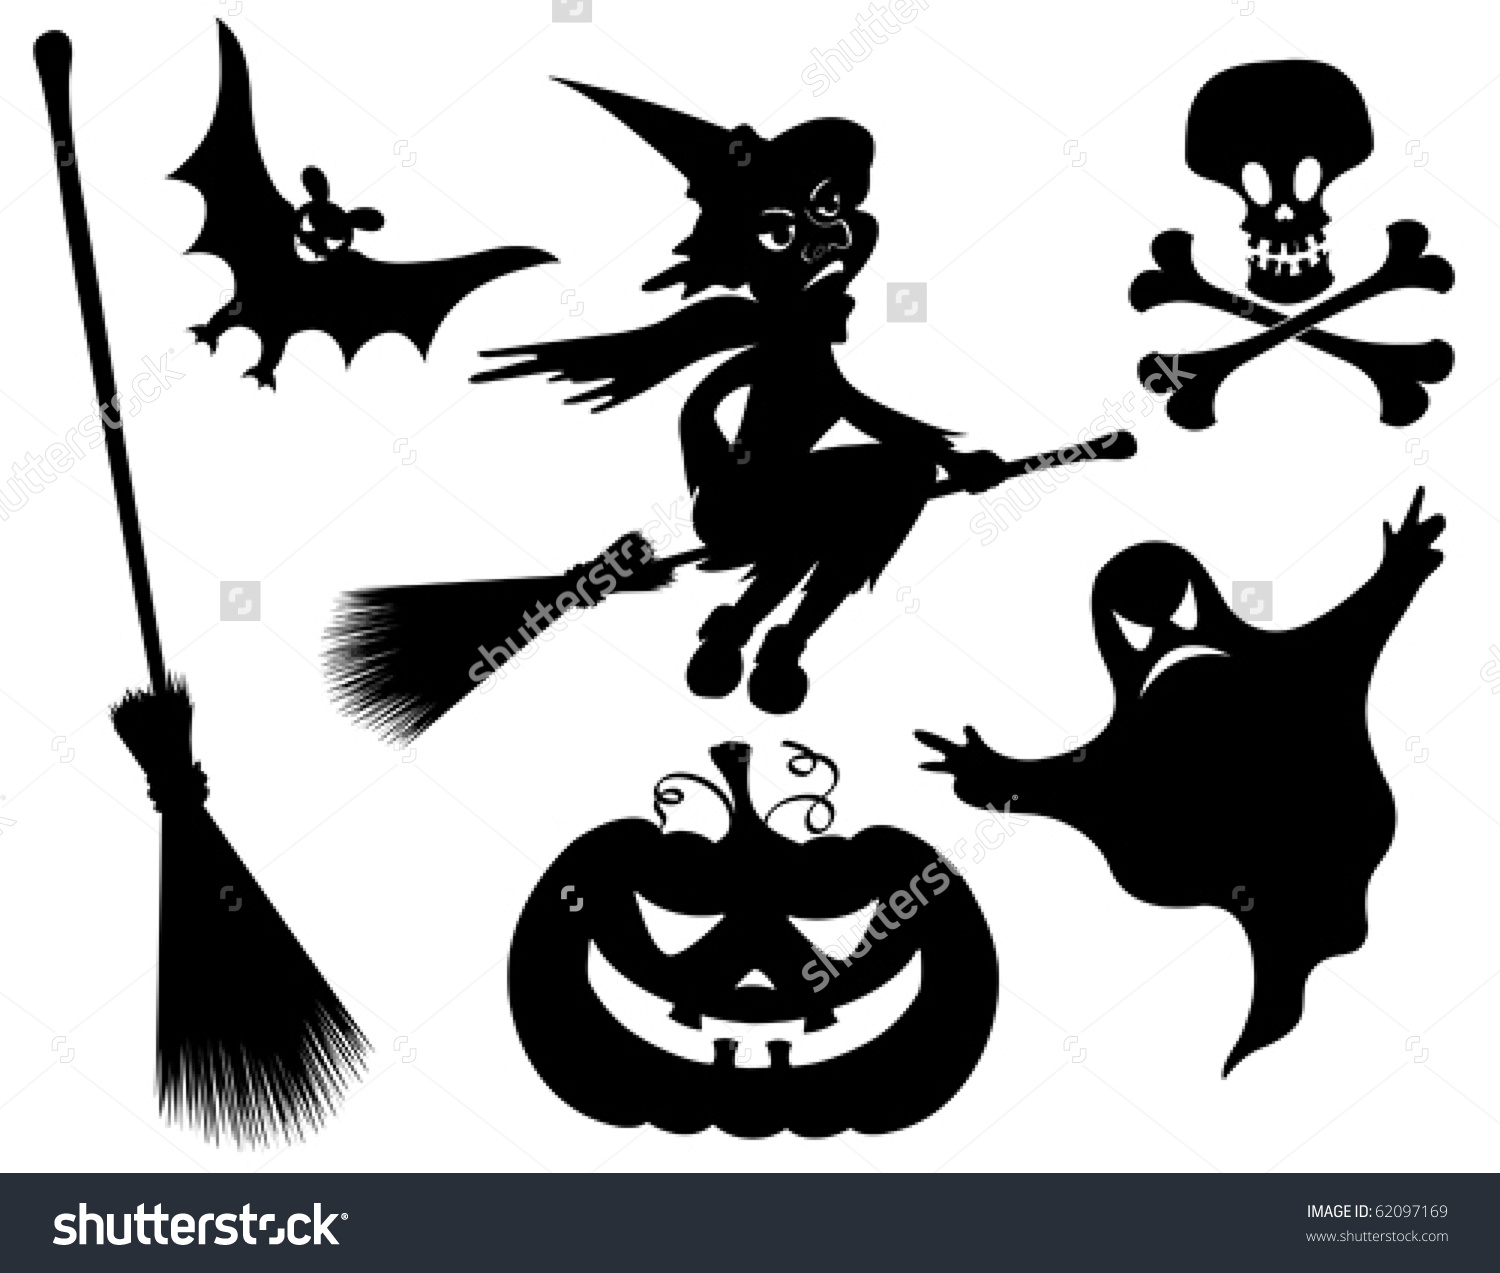 Halloween Silhouettes Witch Pumpkin Witches Broom Stock Vector.